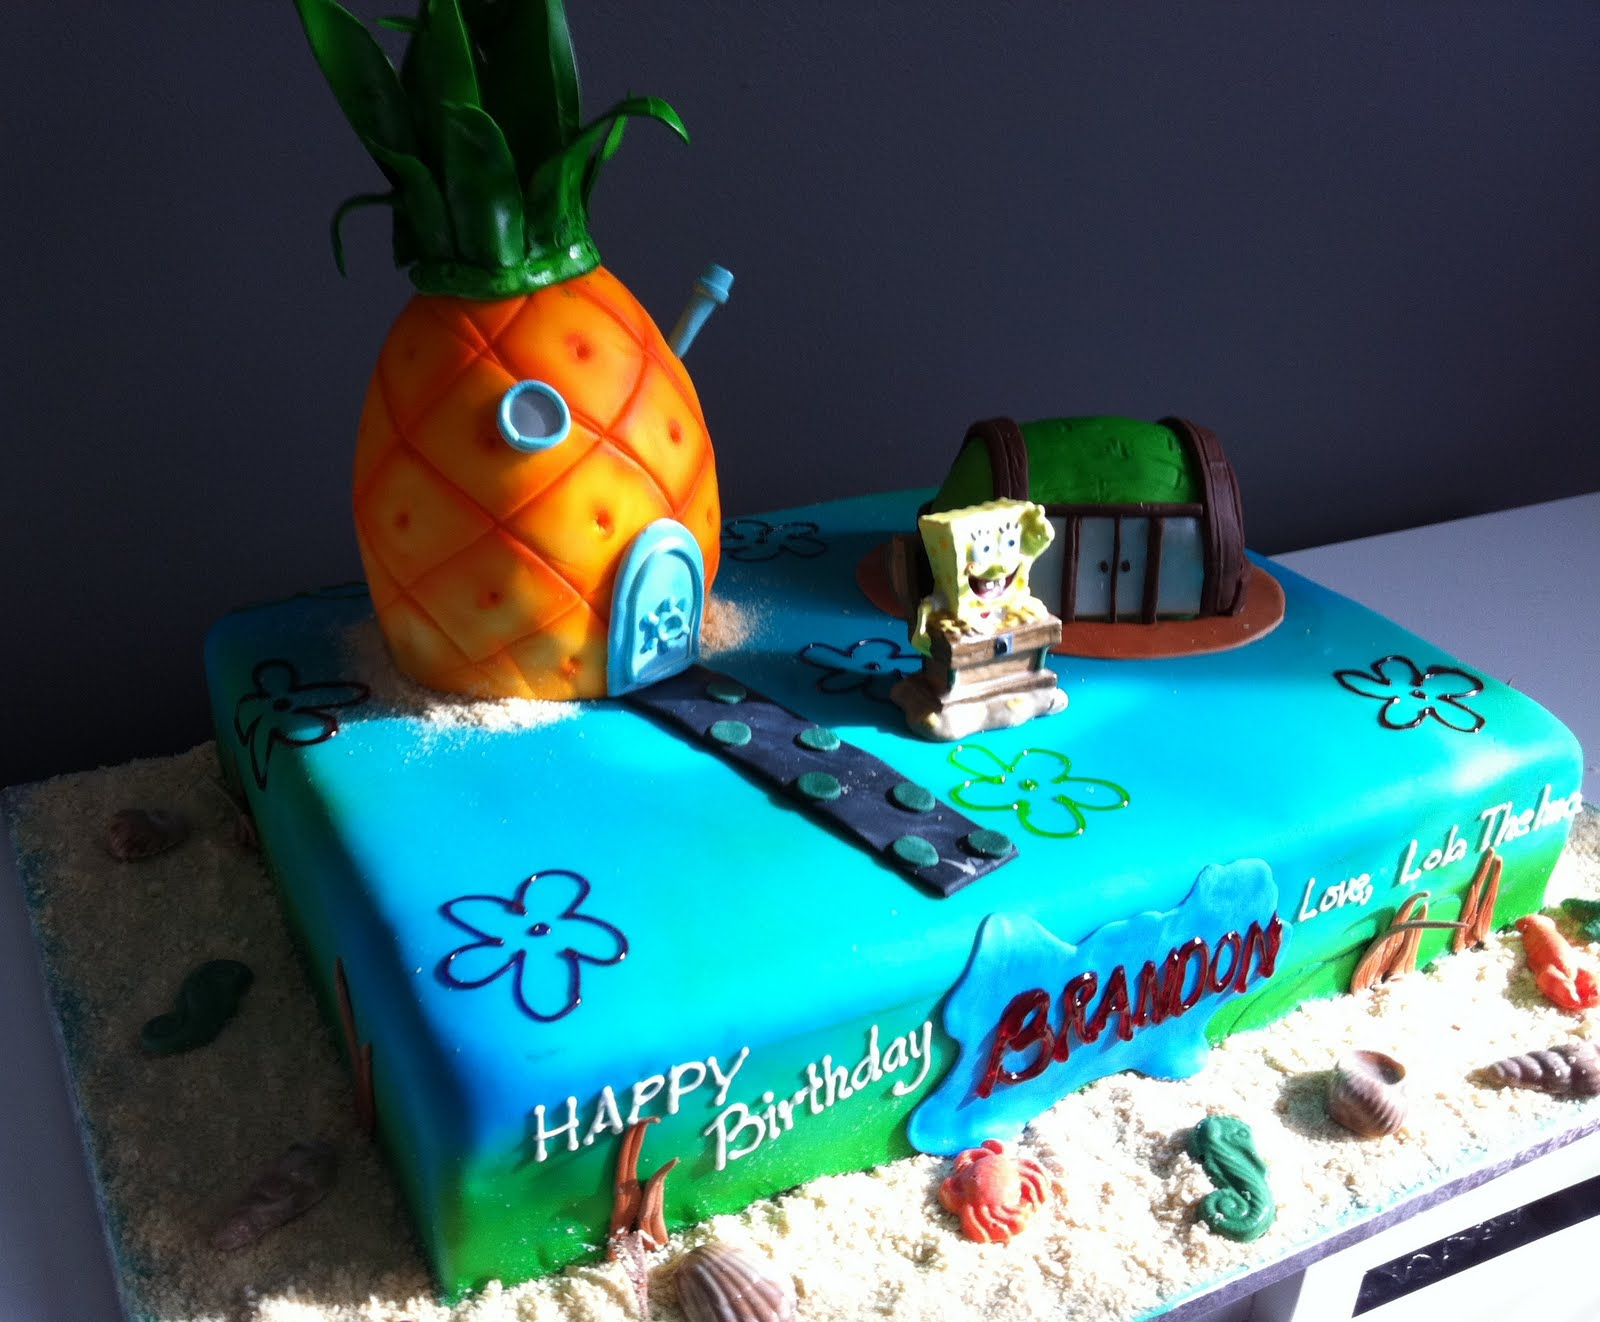 Cake Spongebob Cake Spongbob Squarepants Themed Party Ideas That